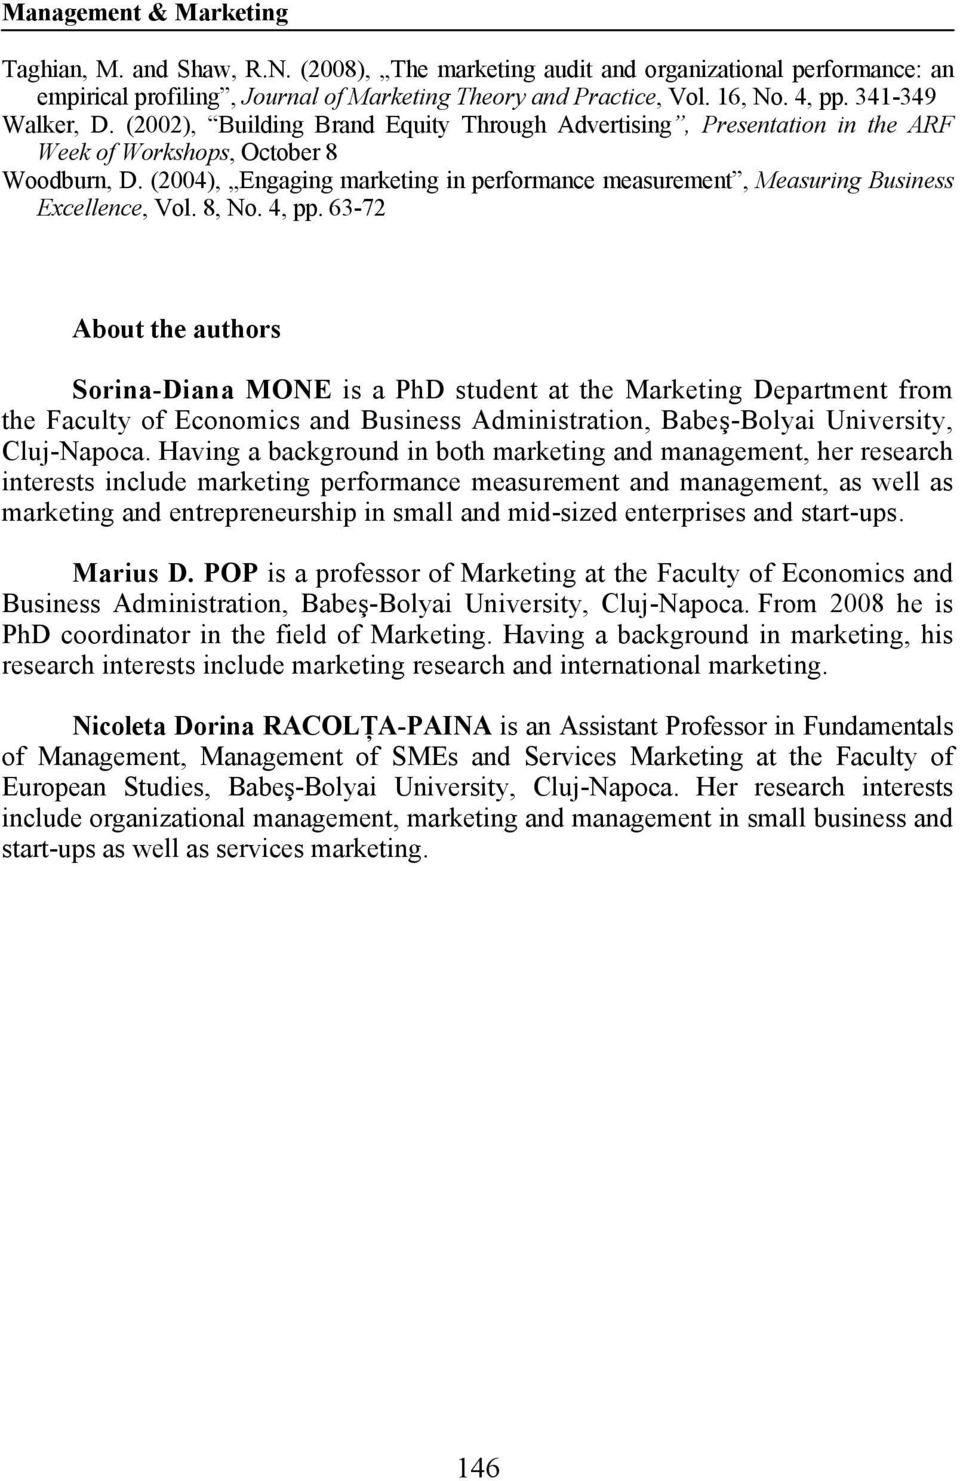 (2004), Engaging marketing in performance measurement, Measuring Business Excellence, Vol. 8, No. 4, pp.